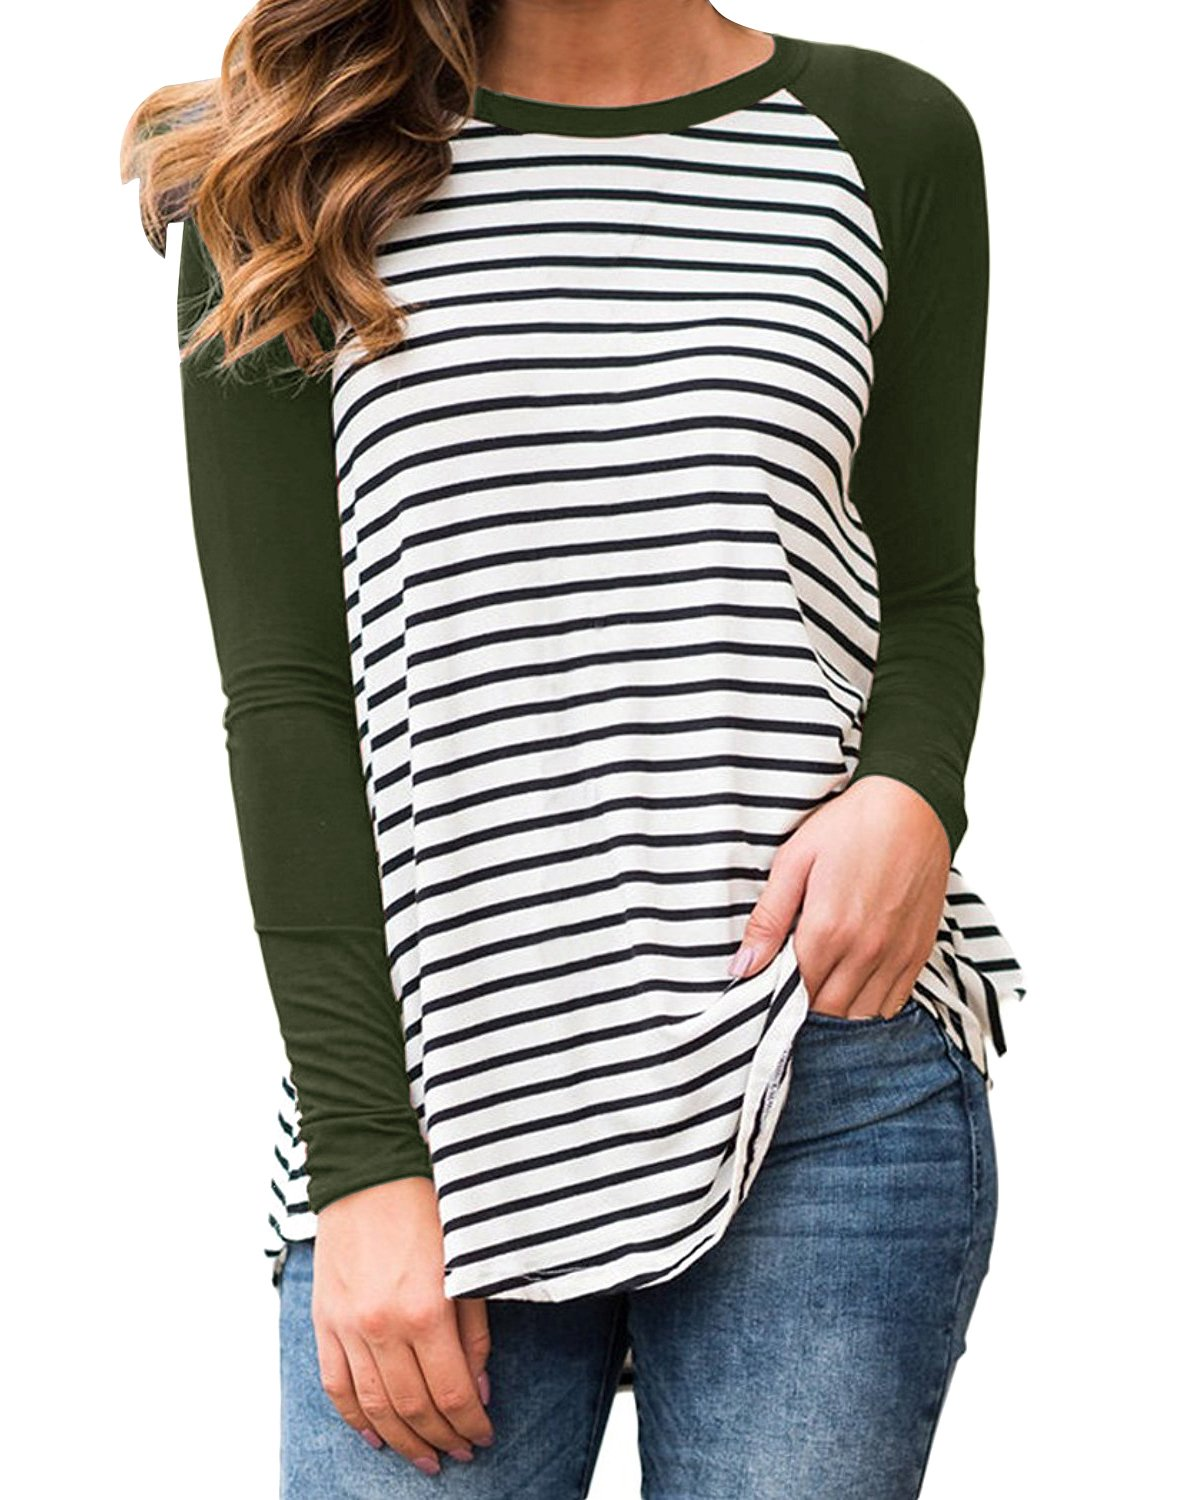 Cnfio Womens Blouses Striped Shirts Long Sleeve Round Neck Patchwork Casual Tops Army Green XL